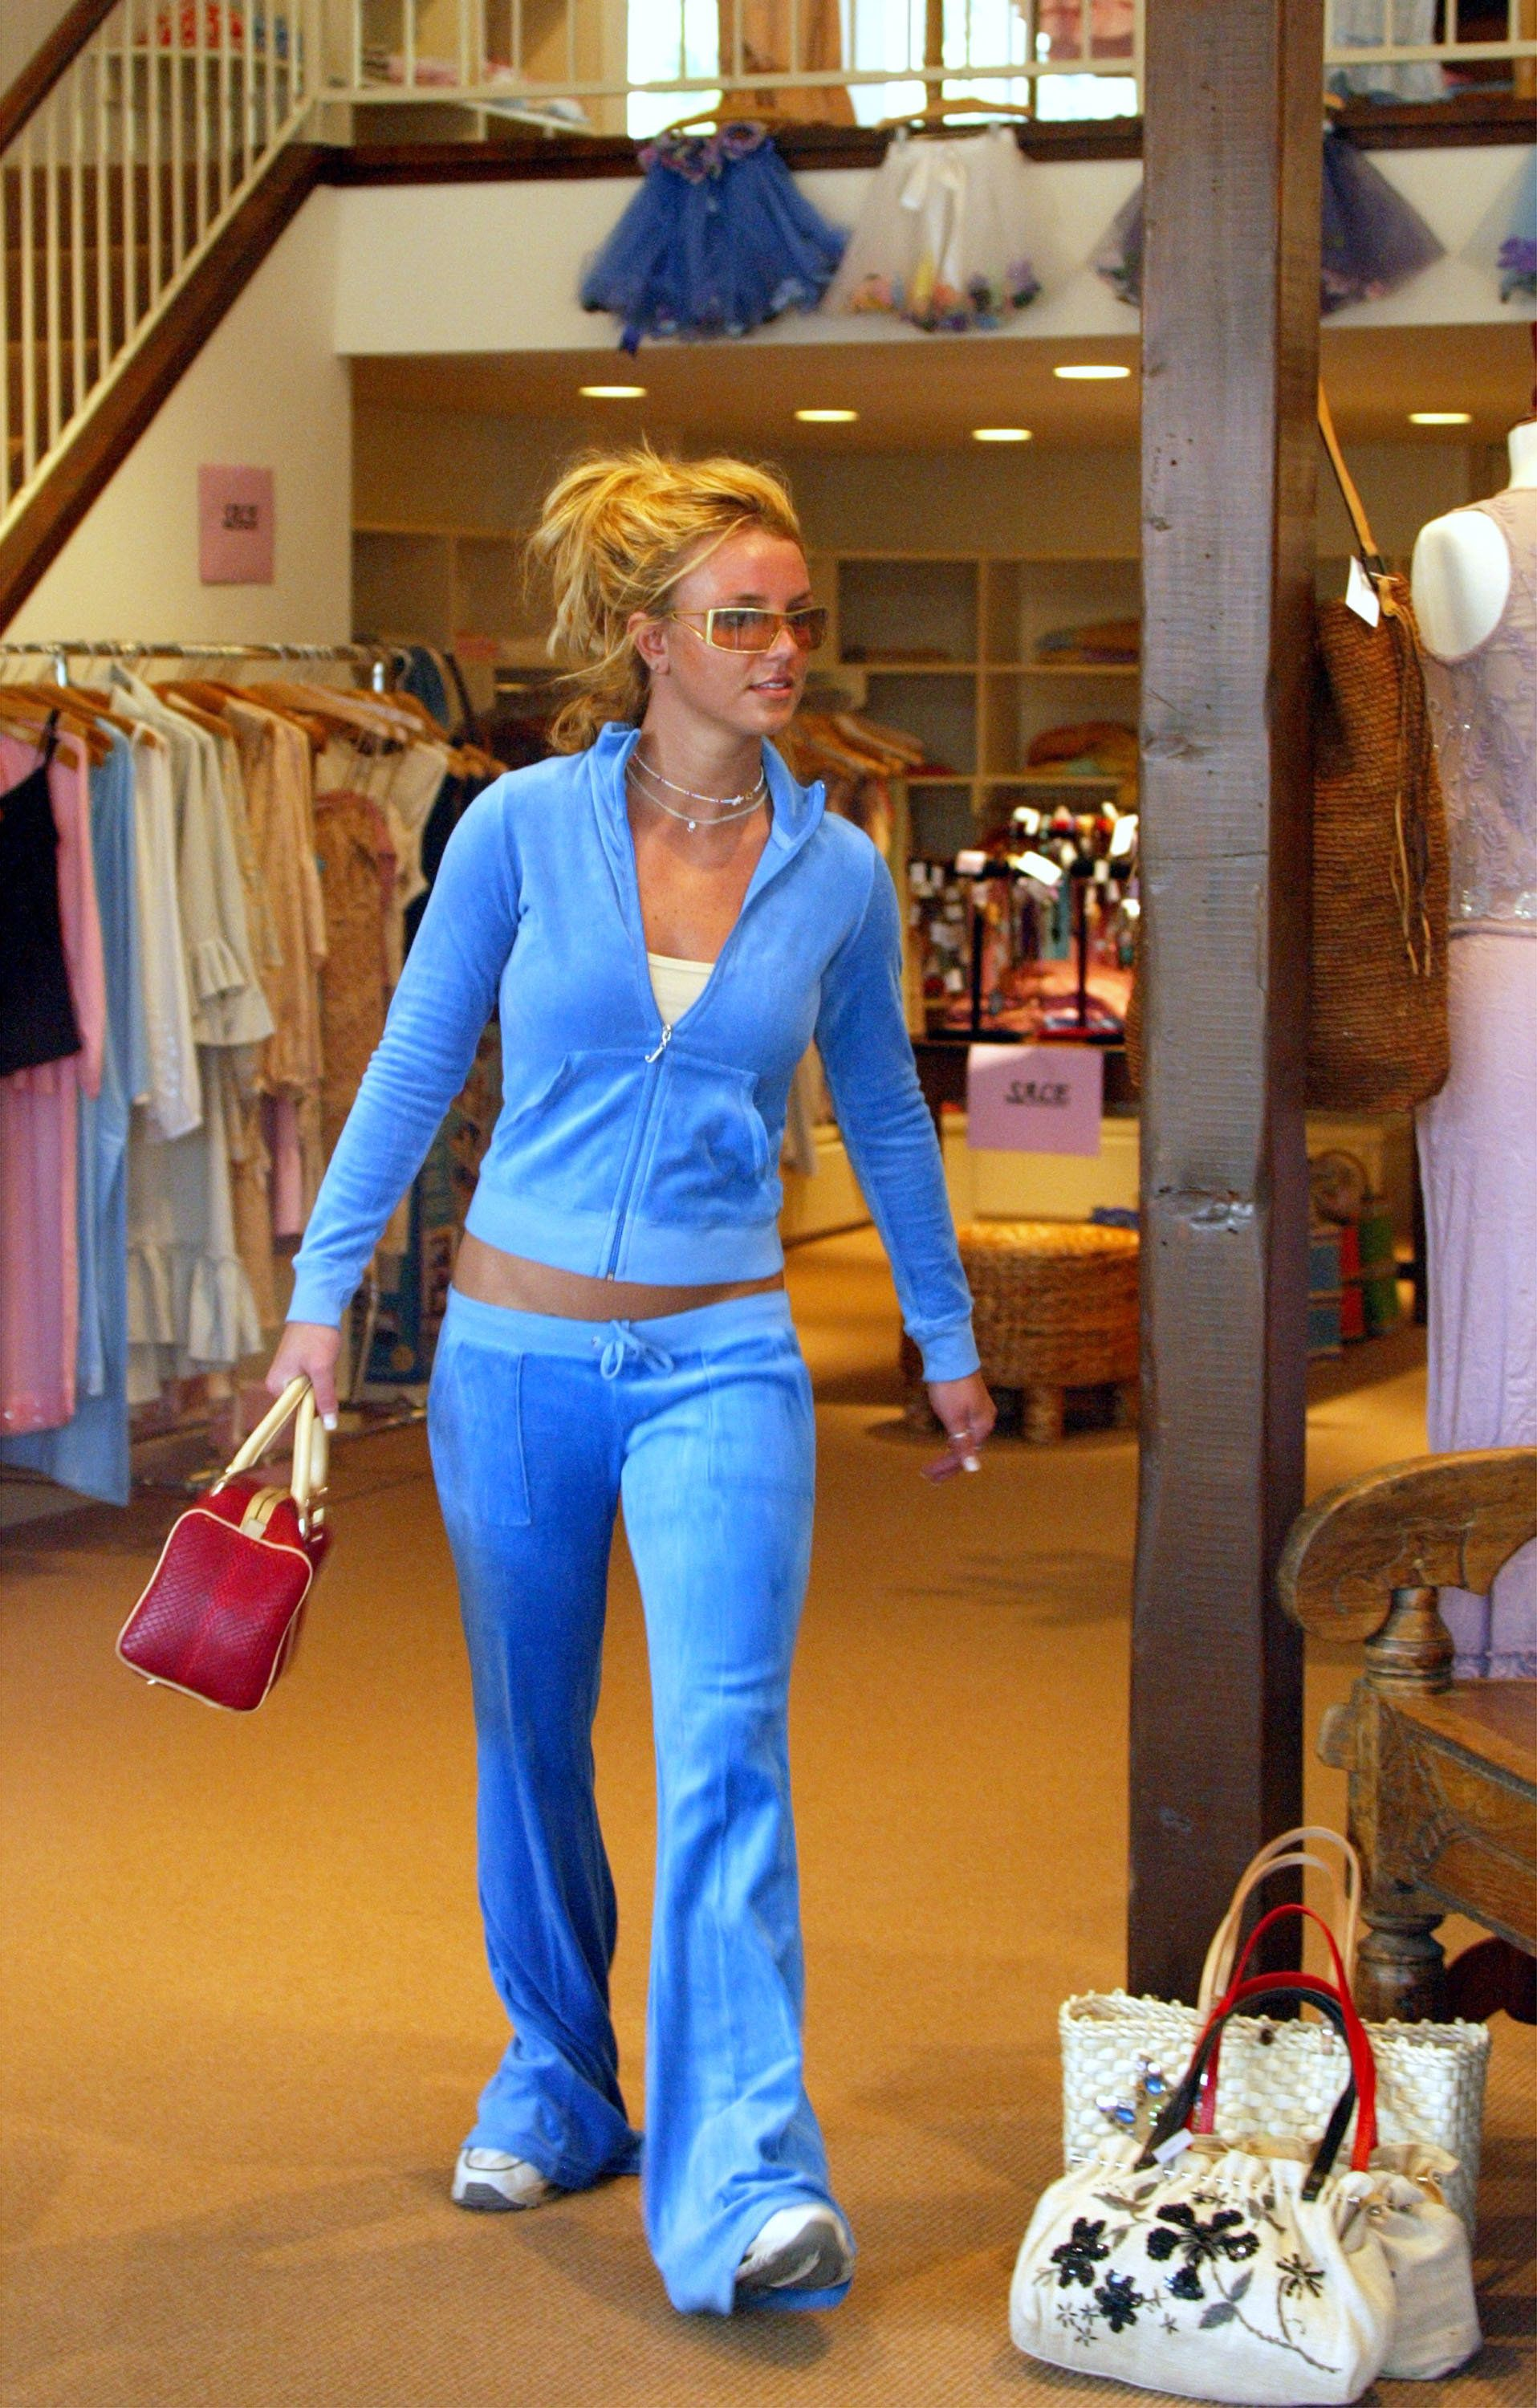 HOLLYWOOD, CA - February 14:   Musician Britney Spears shops in Calypso at the Sunset Plaza on February 14, 2003 in Hollywood, California.  (Photo by Frazer Harrison/Getty Images)